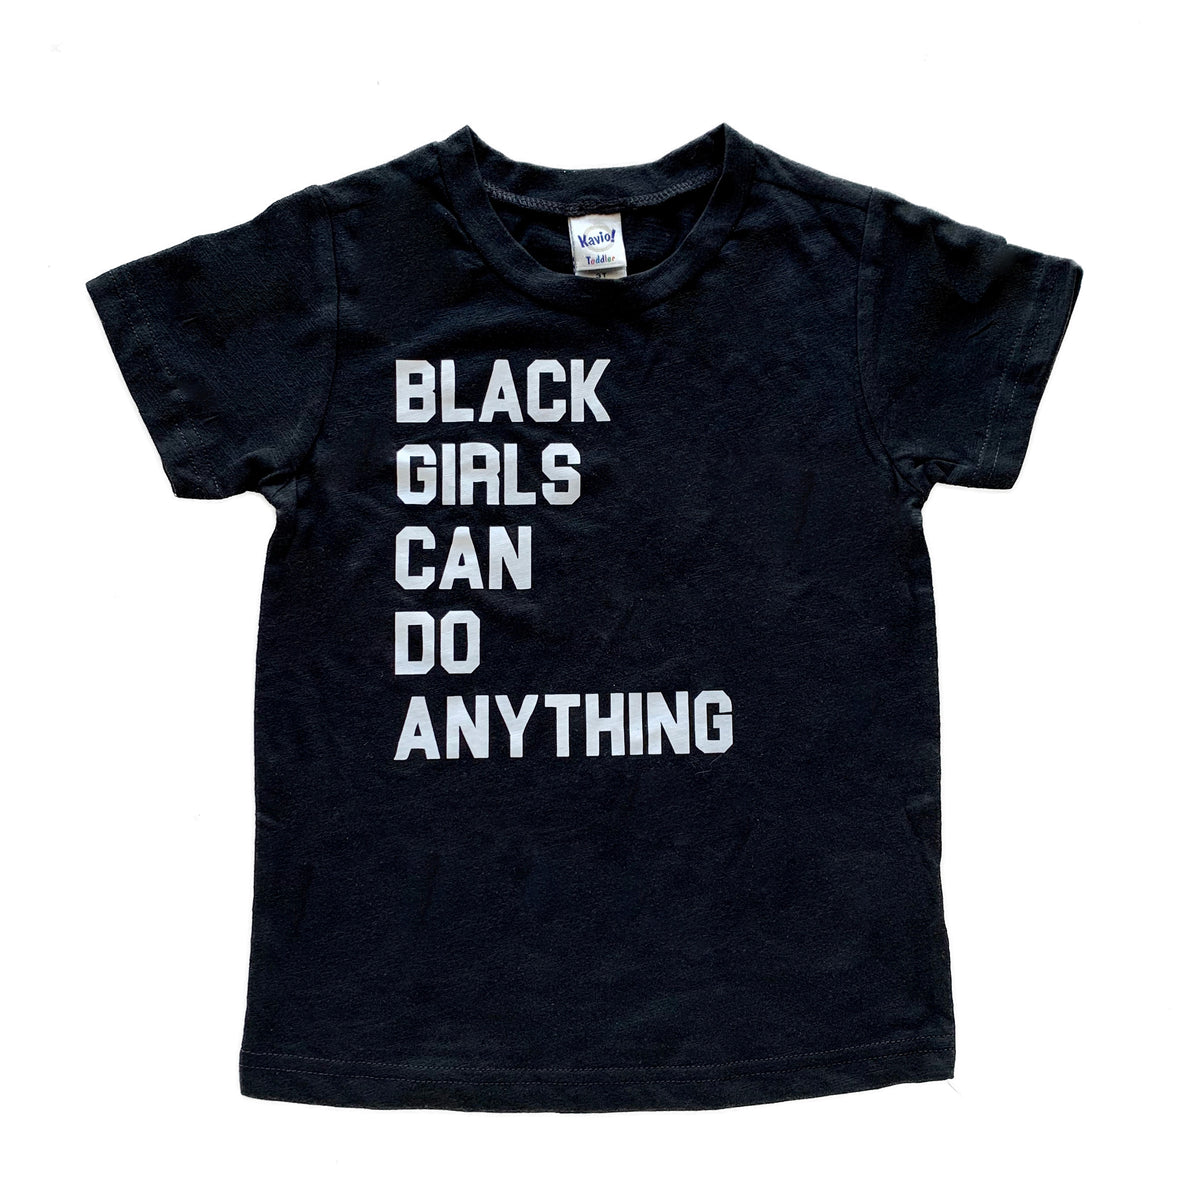 Typical Black Tee Black Girls Can Do Anything Short Sleeve Tee in Black/White